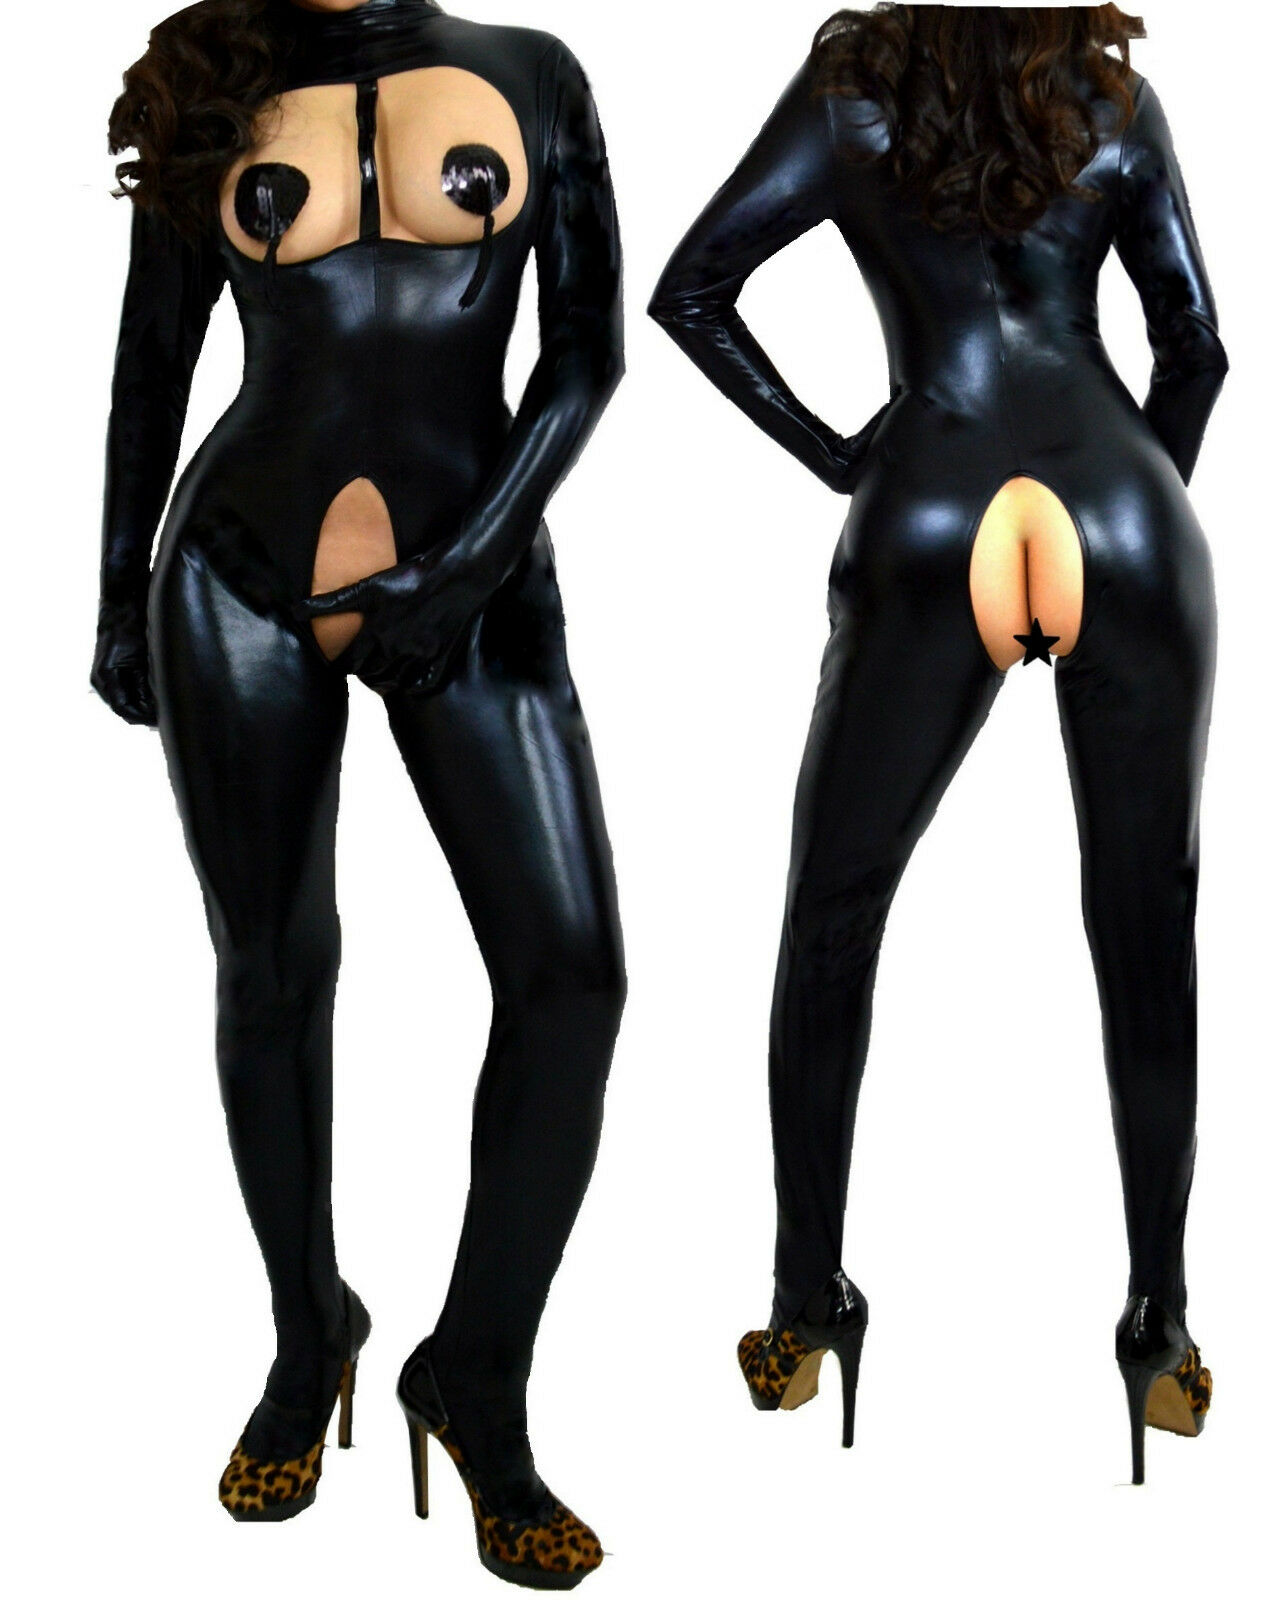 Domina Wetlook Ouvert Catsuit Lack Latex Fetisch Bdsm S M L 34 36 38 40 42 44